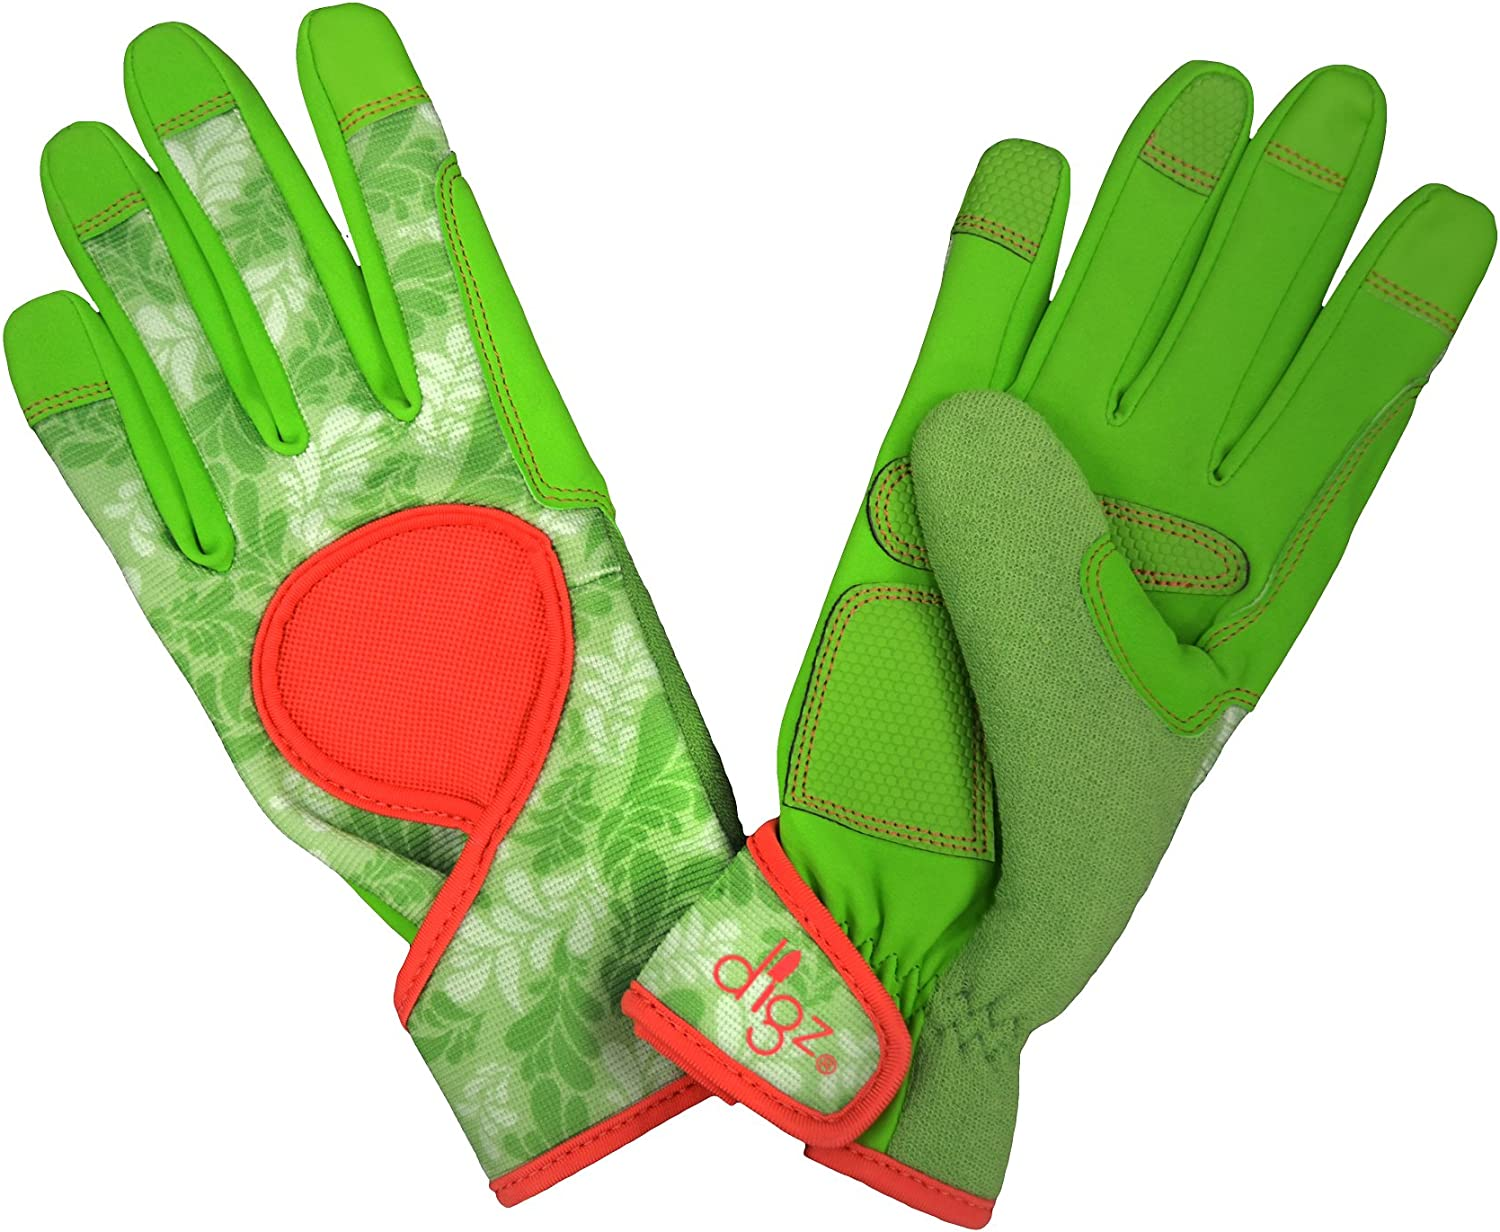 DIGZ Touch Screen compatible High-Performance Women's Gardening Gloves